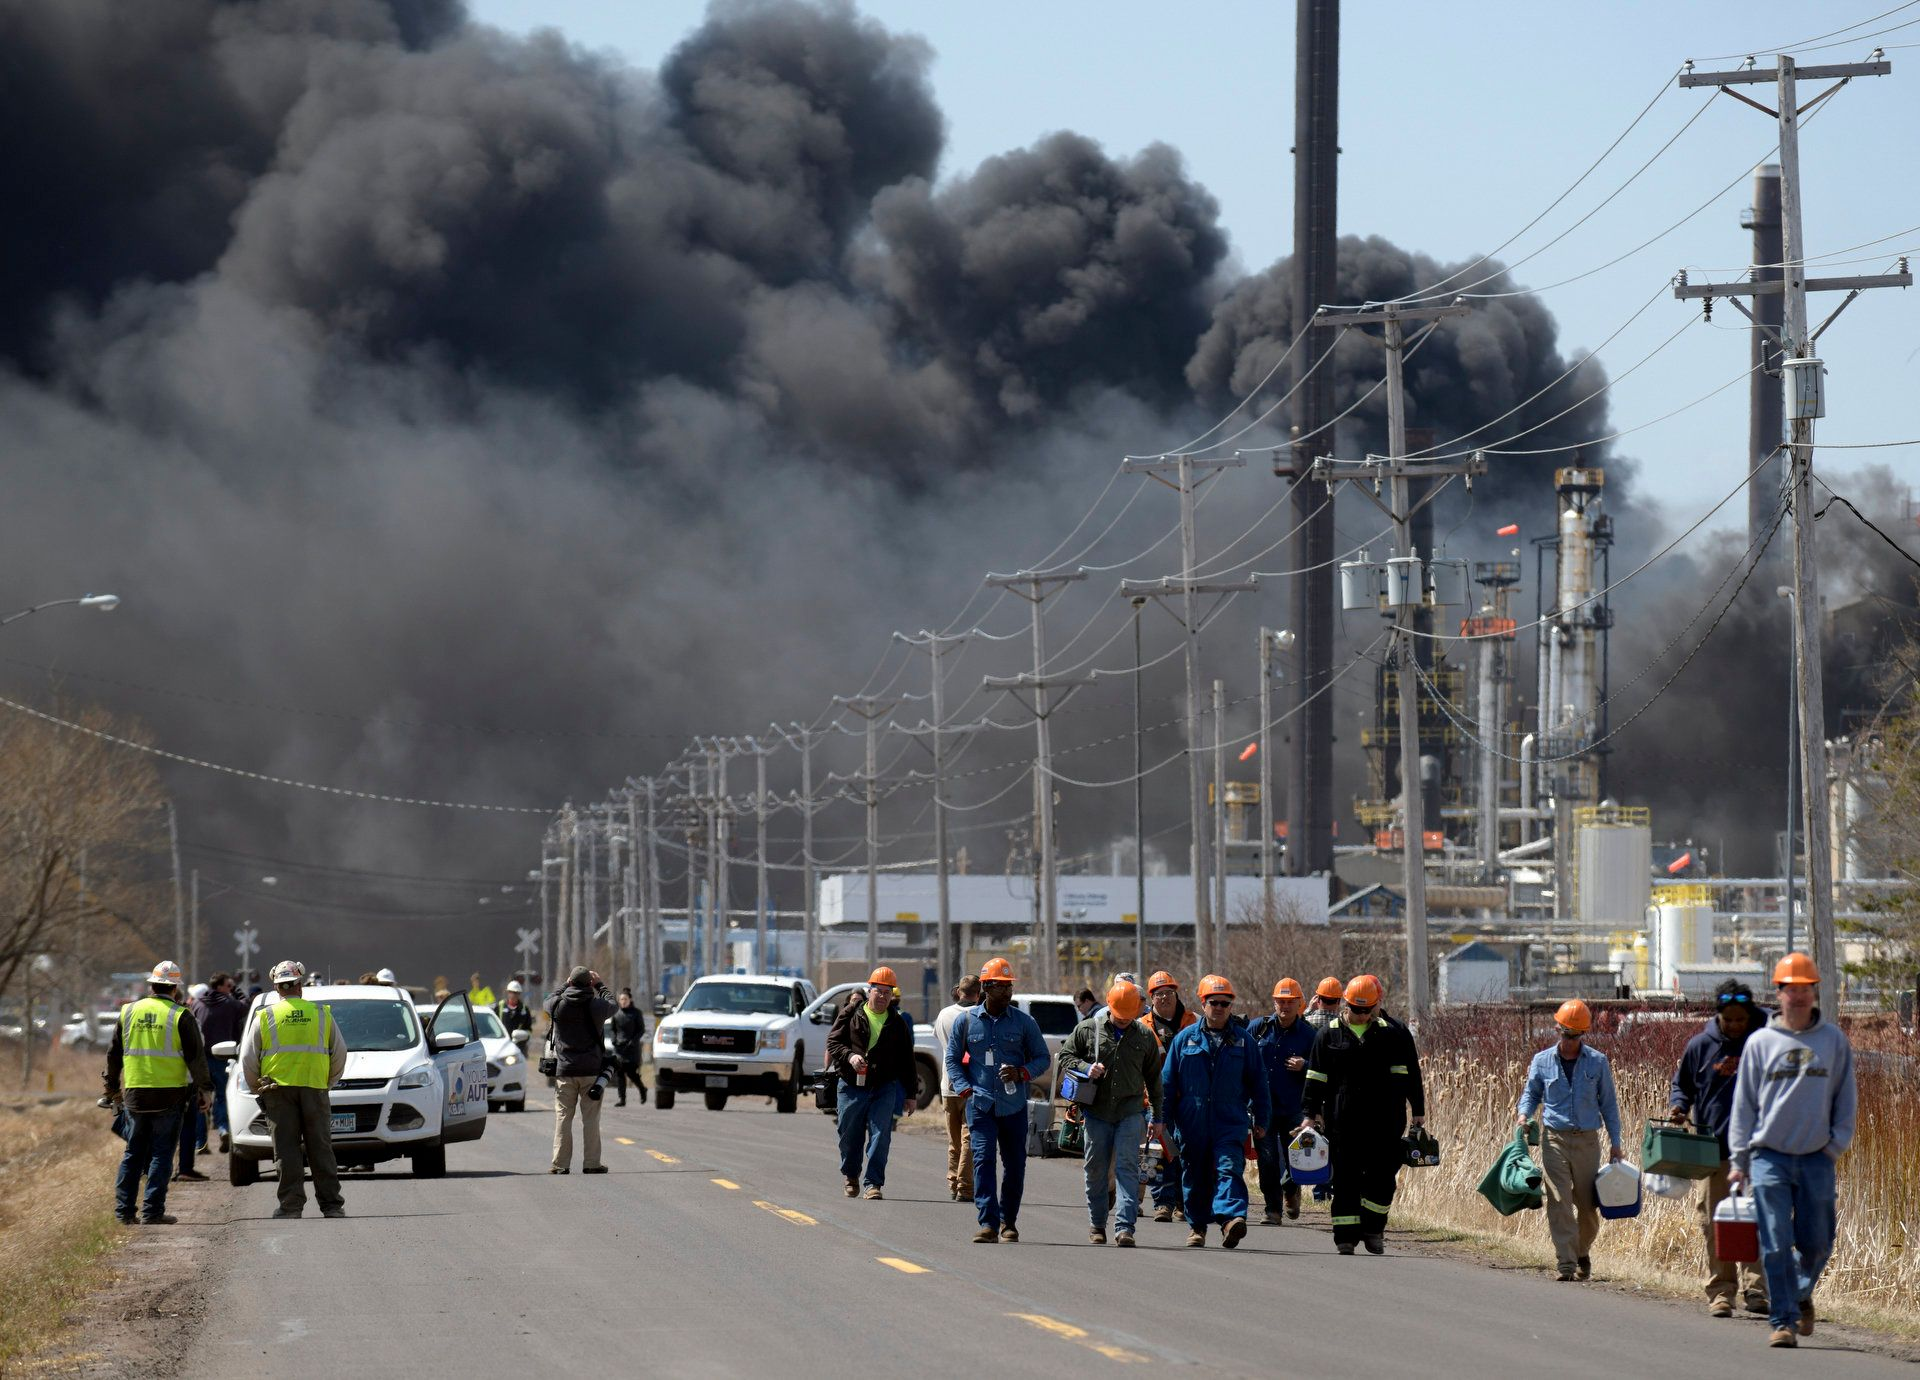 Workers evacuate from an explosion and fire at the Husky Energy oil refinery in Superior, Wisconsin on April 26, 2018. - Several people were injured by an explosion and fire at an oil refinery in the Midwestern US state of Wisconsin on Thursday, sending thick plumes of black smoke into the sky as authorities urged residents in the area to evacuate. (Photo by Jules Ameel / AFP)        (Photo credit should read JULES AMEEL/AFP/Getty Images)